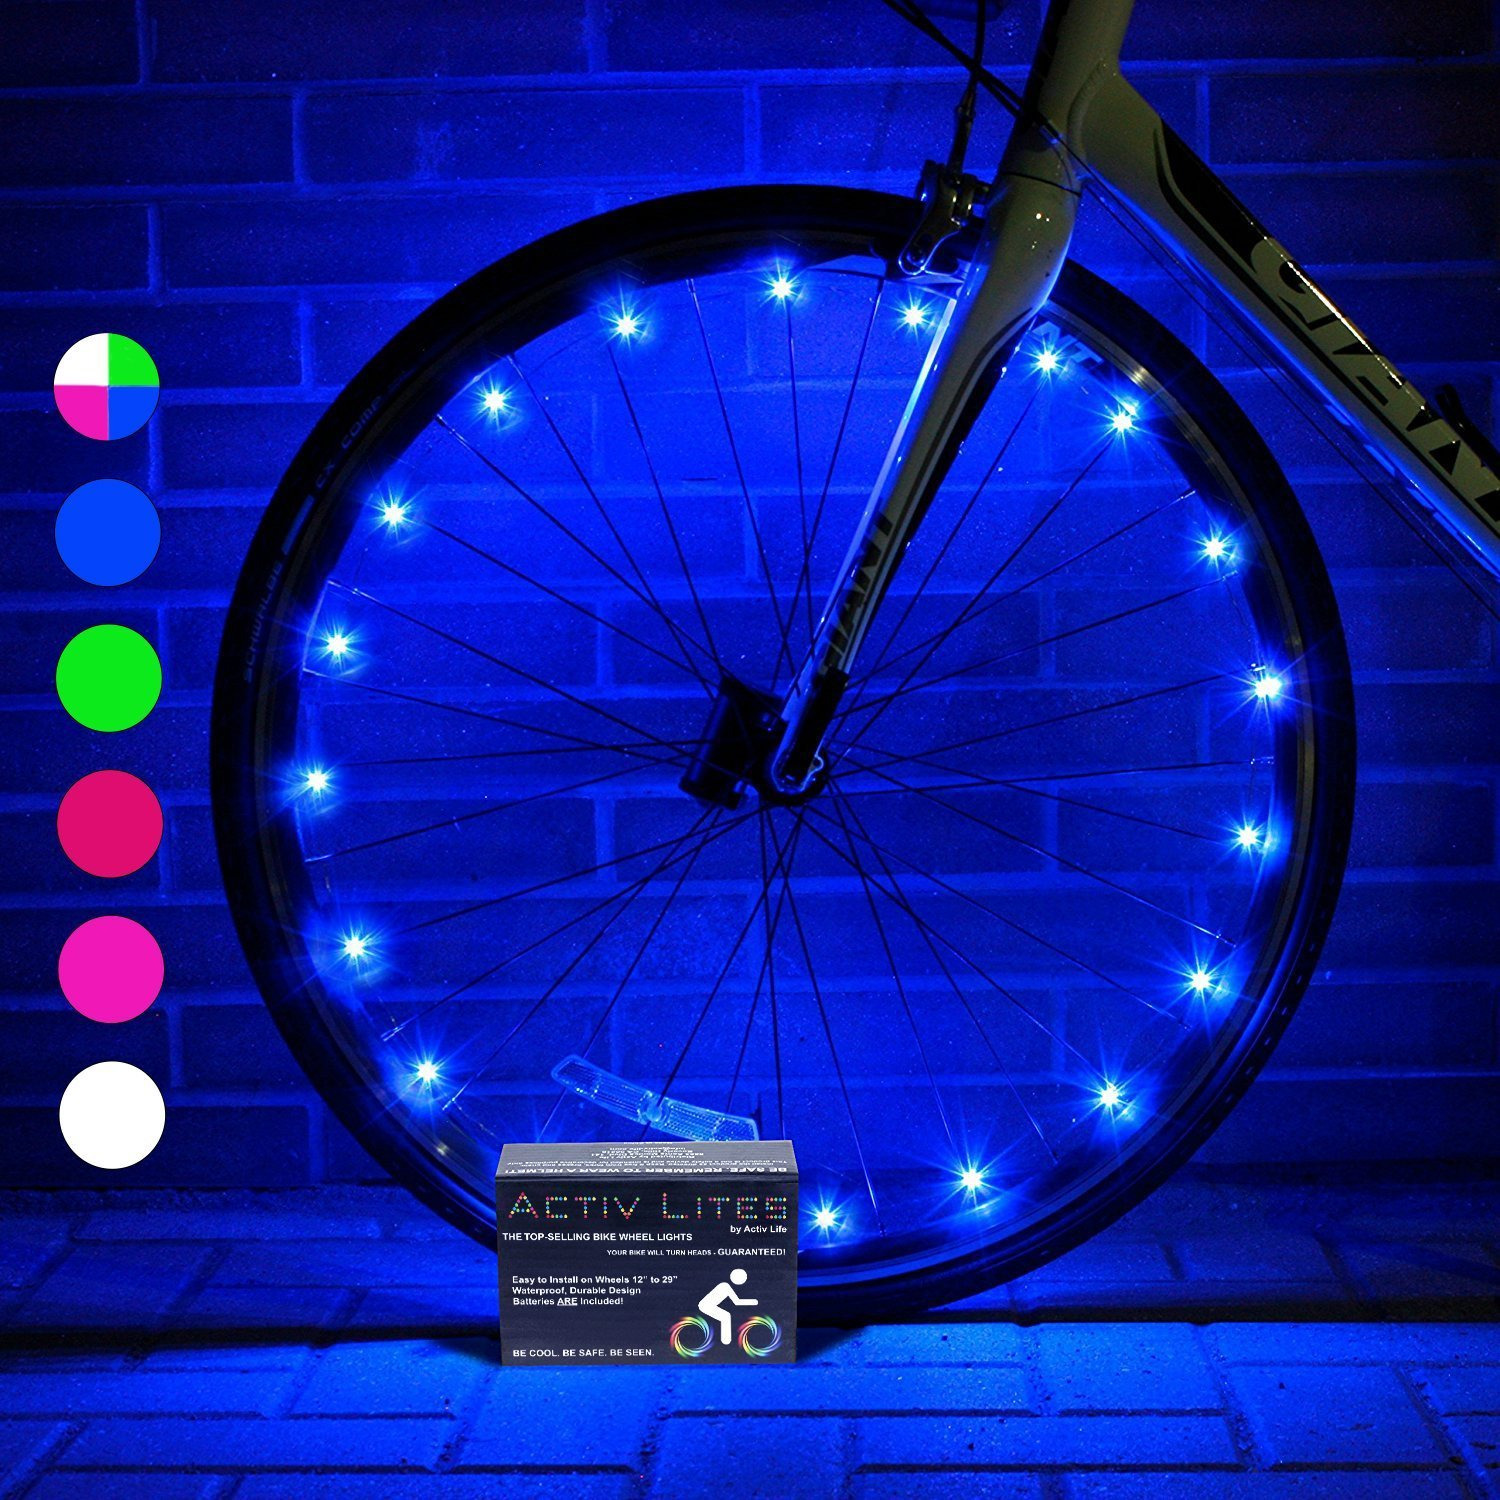 Activ Life LED Bike Wheel Lights with BATTERIES INCLUDED! Visible From All Angles for Ultimate Safety and Style (1 Tyre Pack)